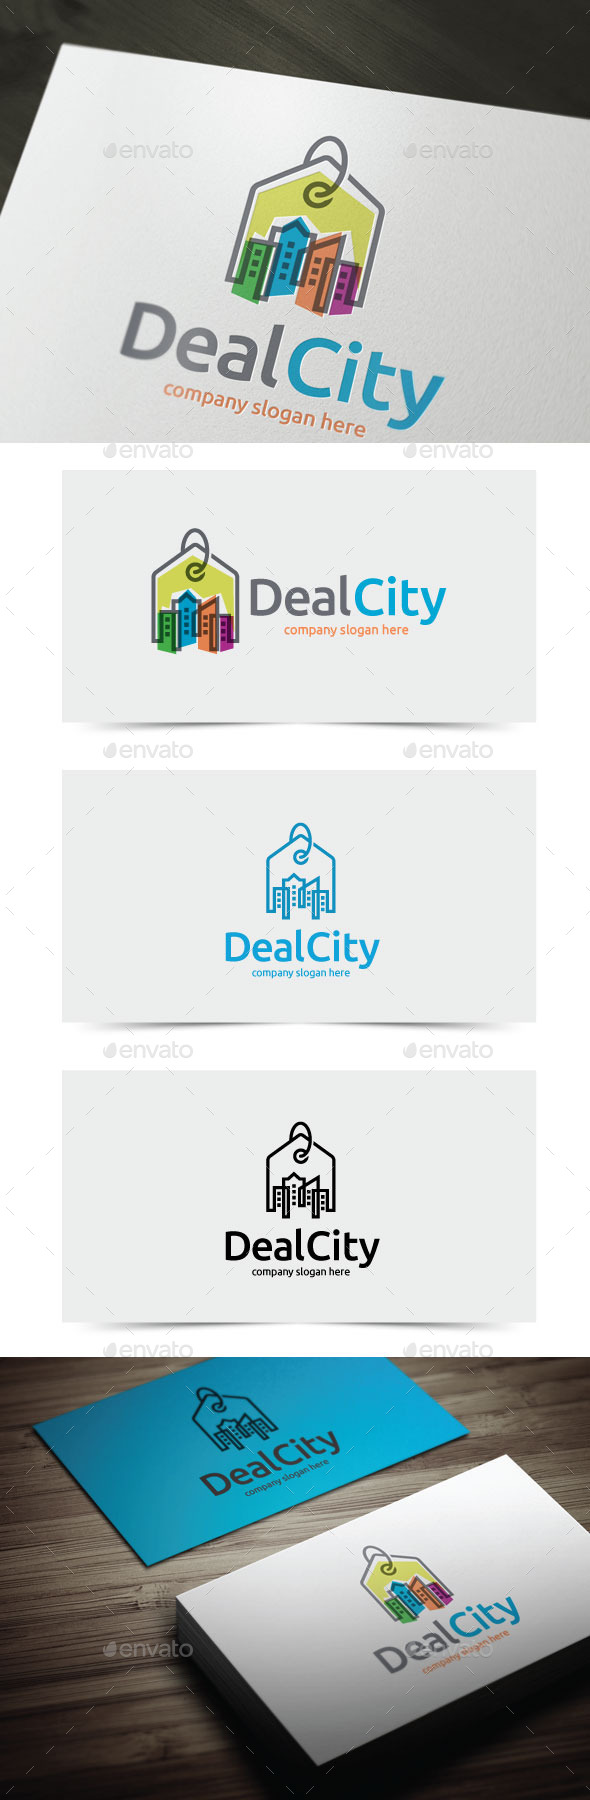 GraphicRiver Deal City 11276479